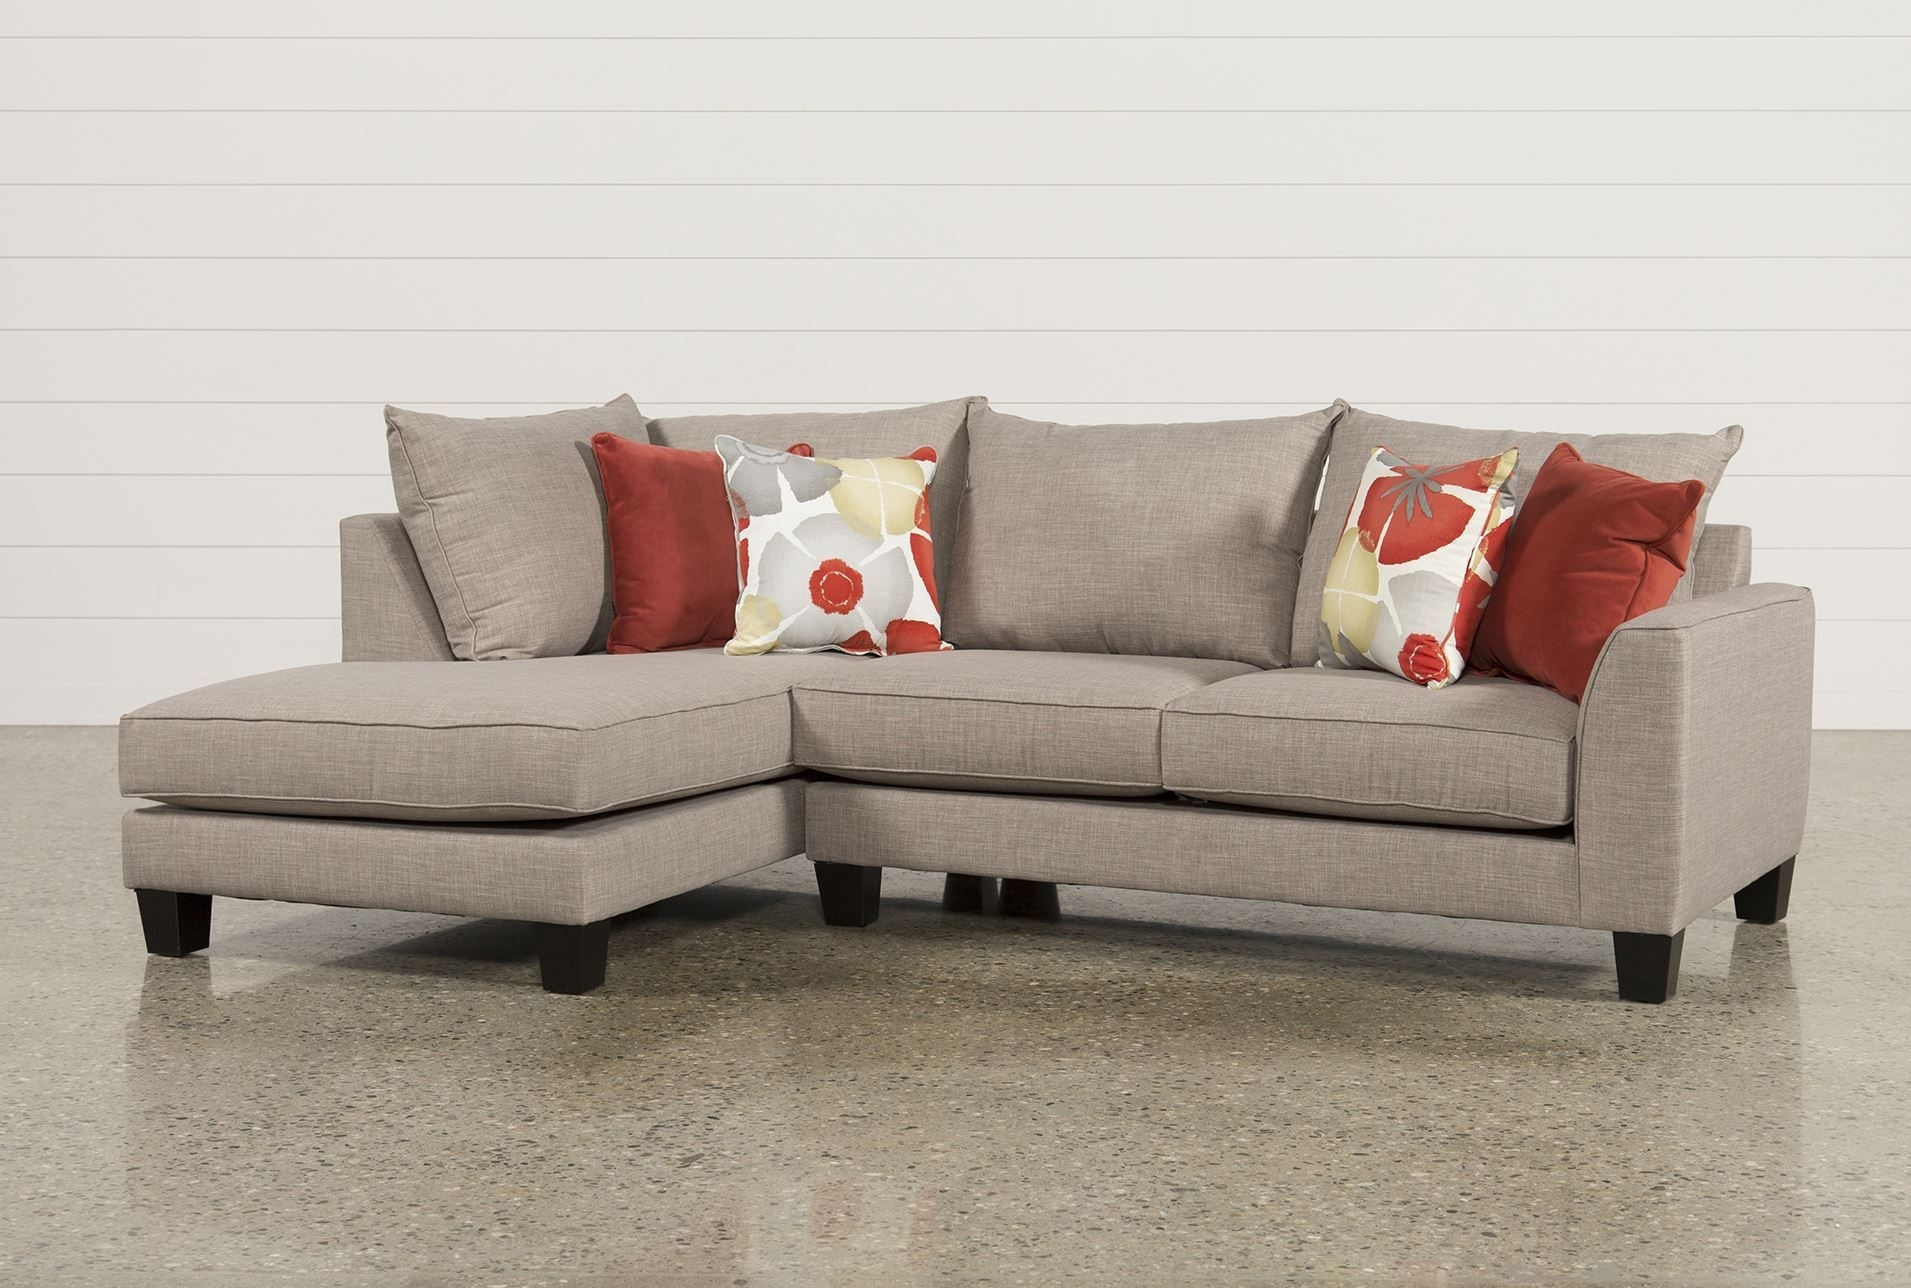 Ideas Of Laf Chaise On Kerri 2 Piece Sectional W Laf Chaise Living with regard to Kerri 2 Piece Sectionals With Laf Chaise